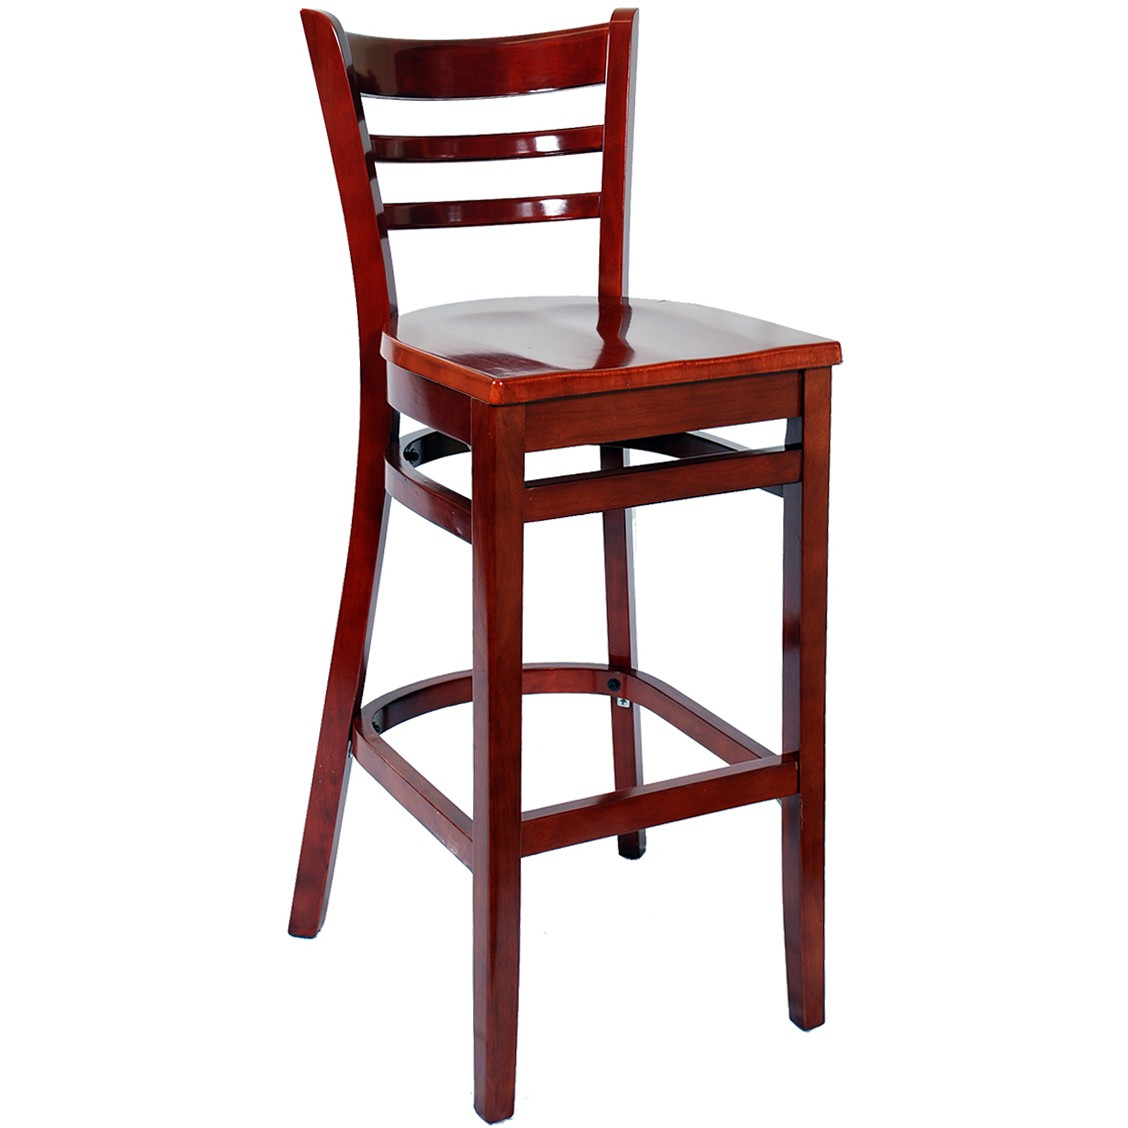 Marvelous photograph of Ladder Back Bar Stool Mahogany Finish with a Wood Seat with #B23619 color and 1128x1128 pixels